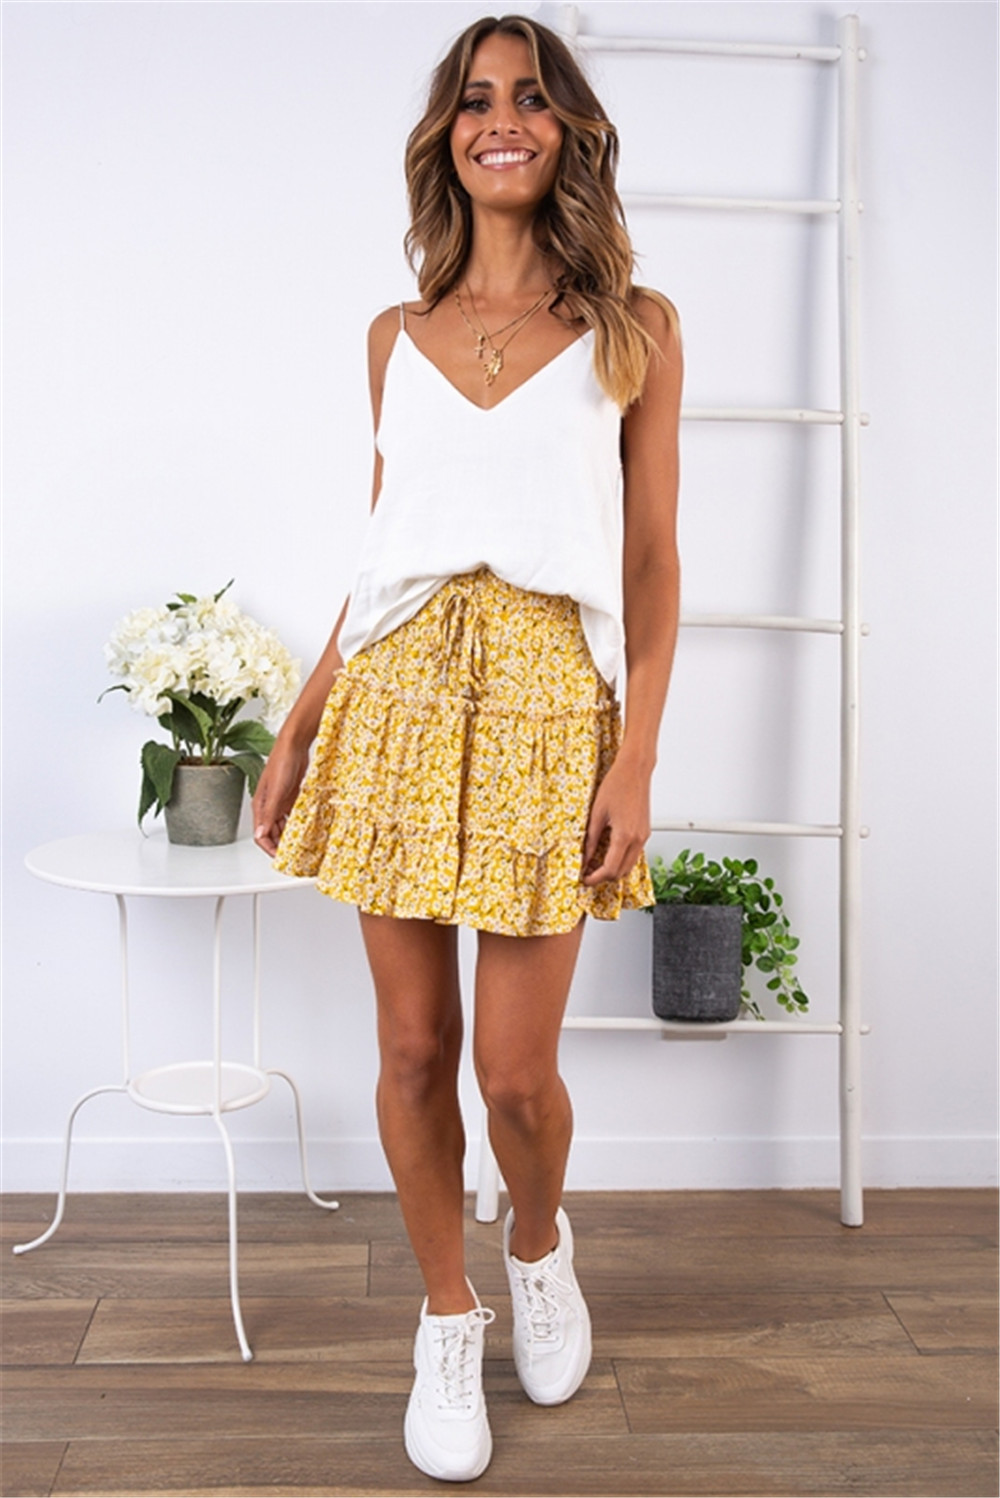 HTB14 g8NhTpK1RjSZR0q6zEwXXaJ - Sexy Women Fashion High Waist Frills Skirt for Women Broken Flower Half-length Skirt Printed Beach A Short Mini Skirts New